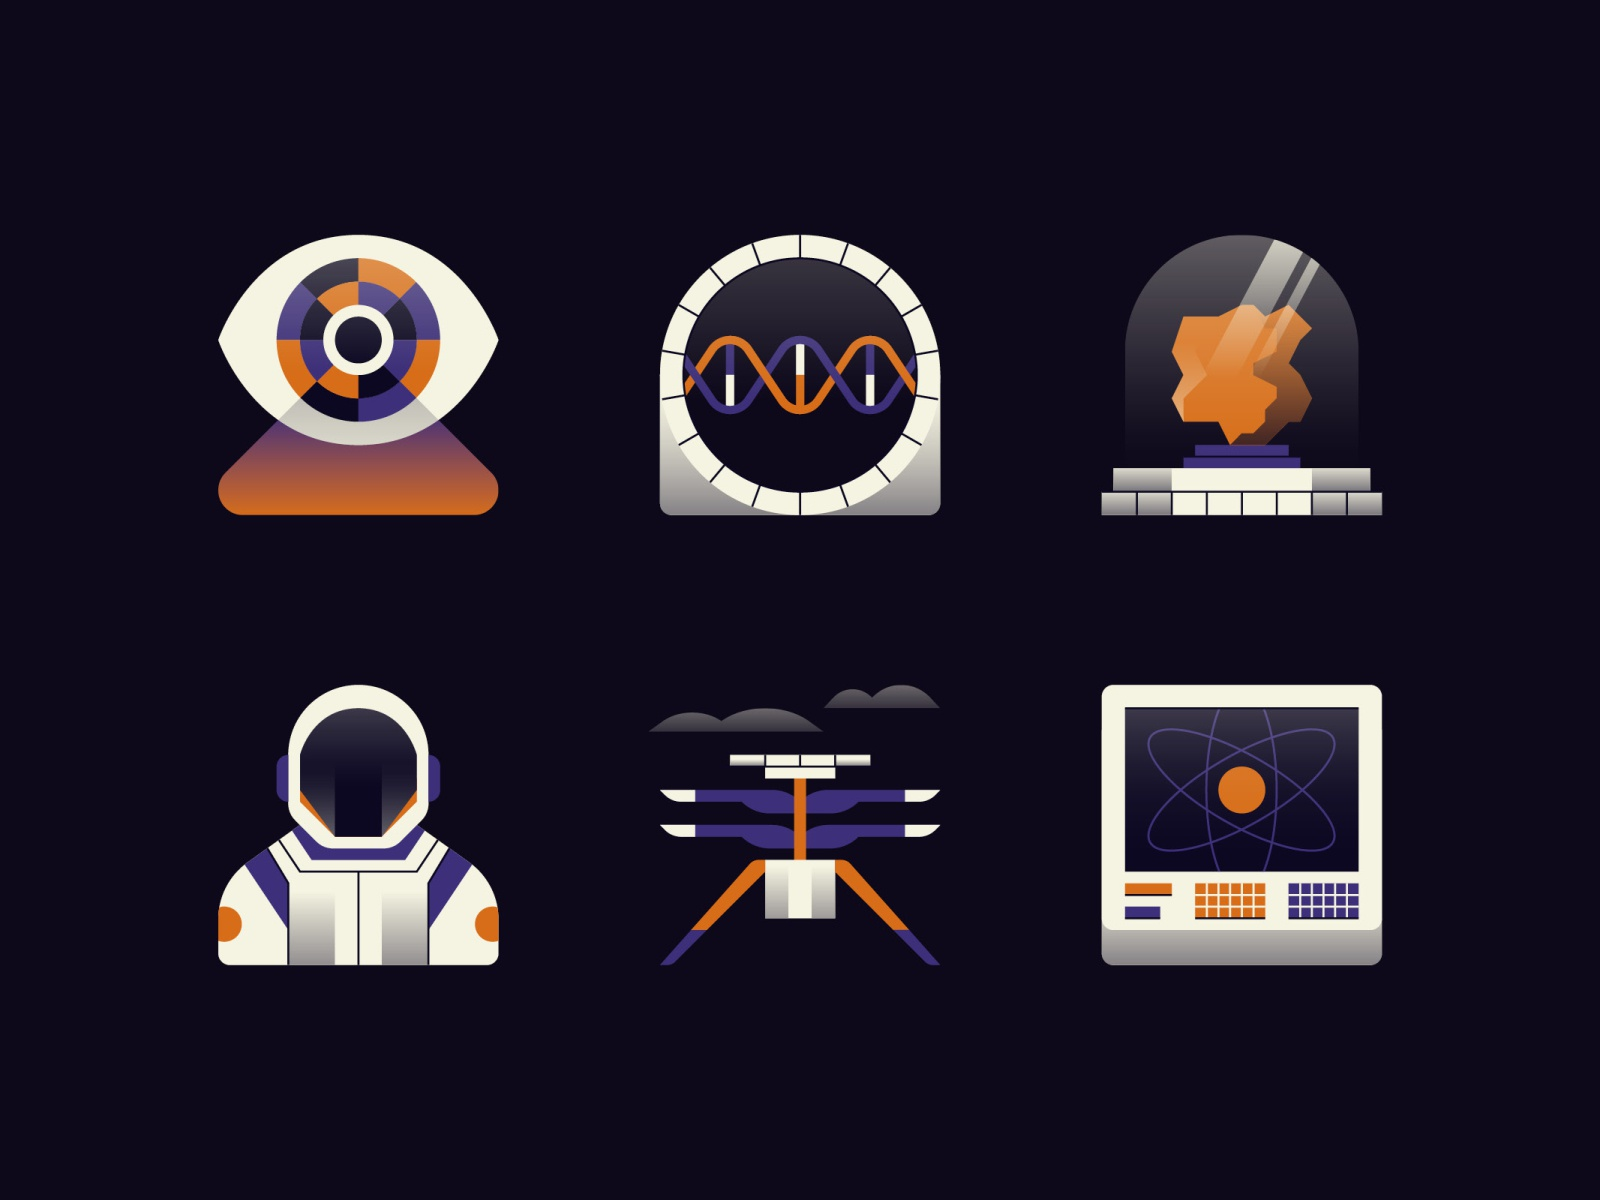 Mars Exploration Icons by James Round